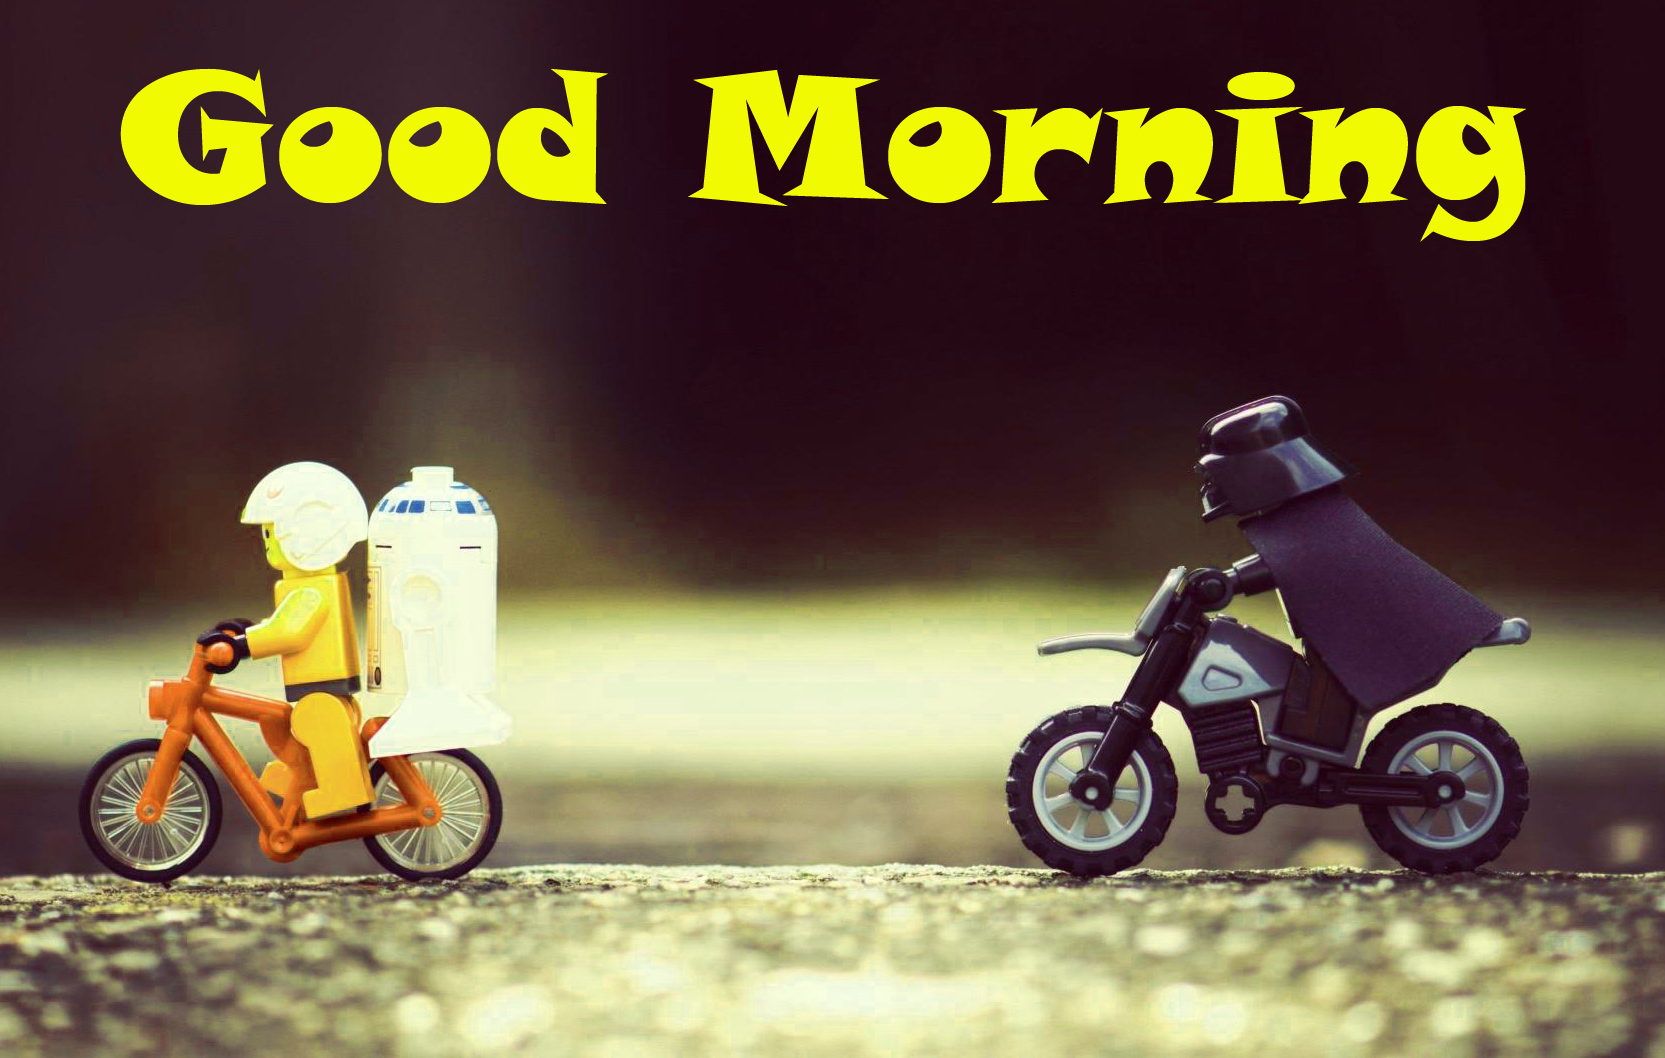 Good Morning Images Wallpaper Photo Pics HD Download